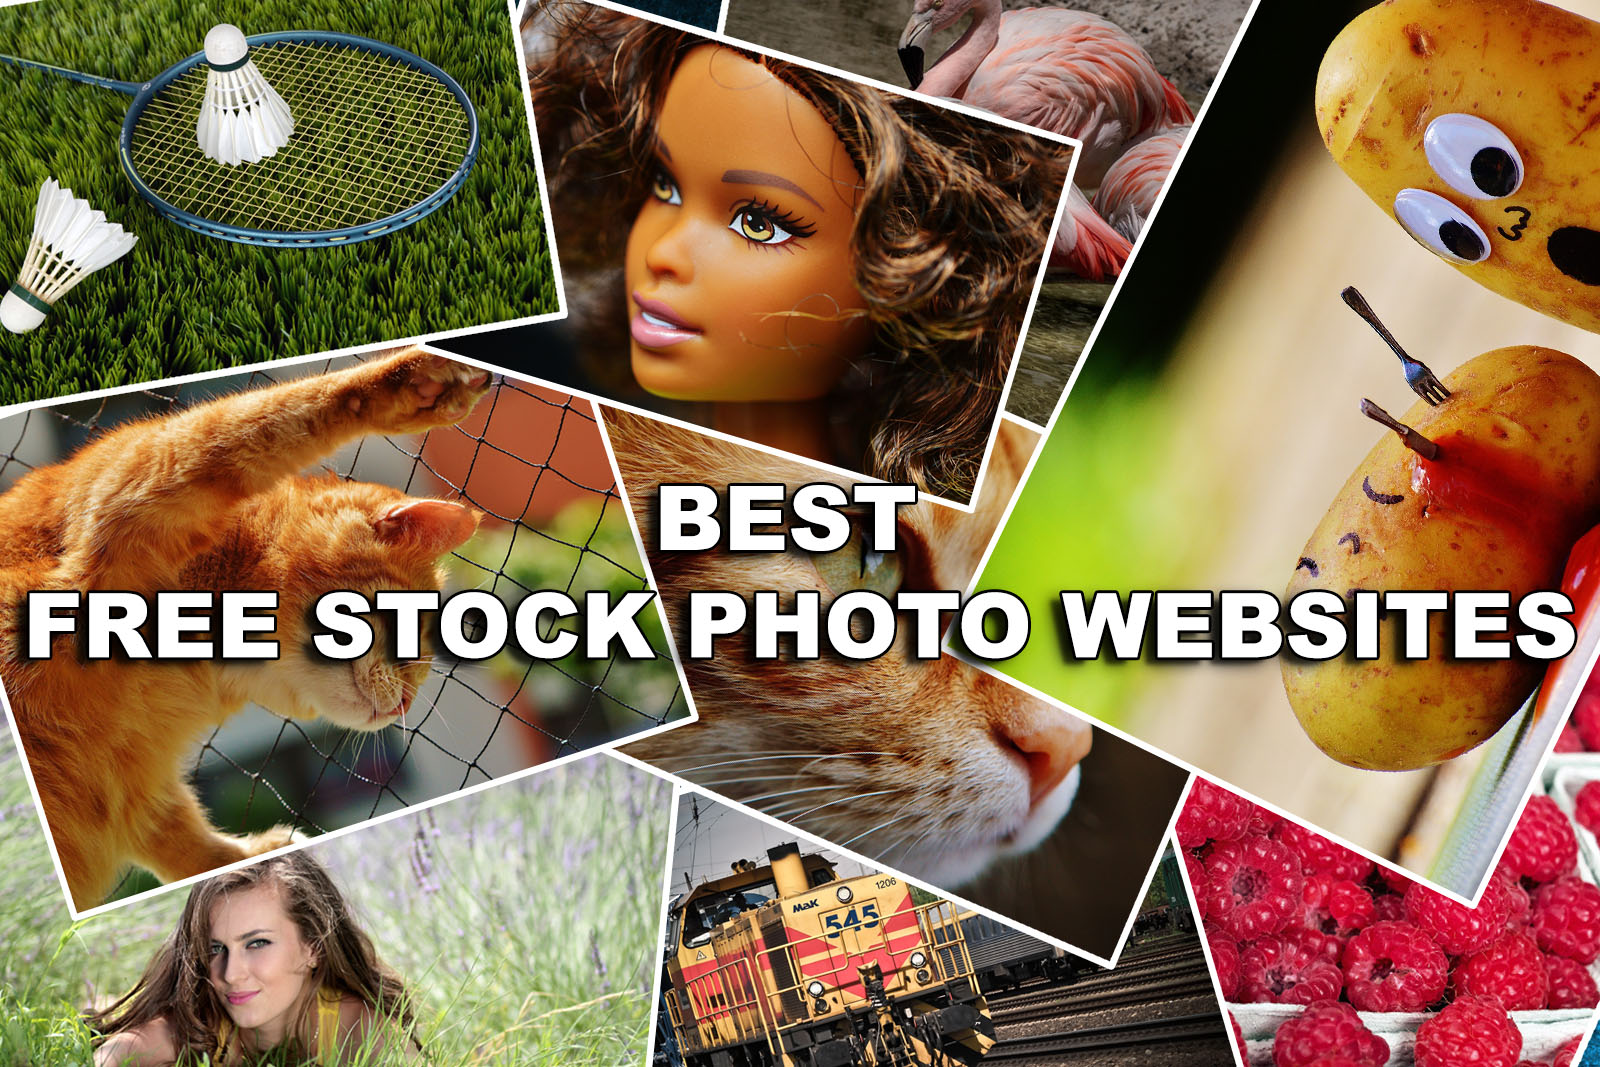 Best Free Stock Photo Websites